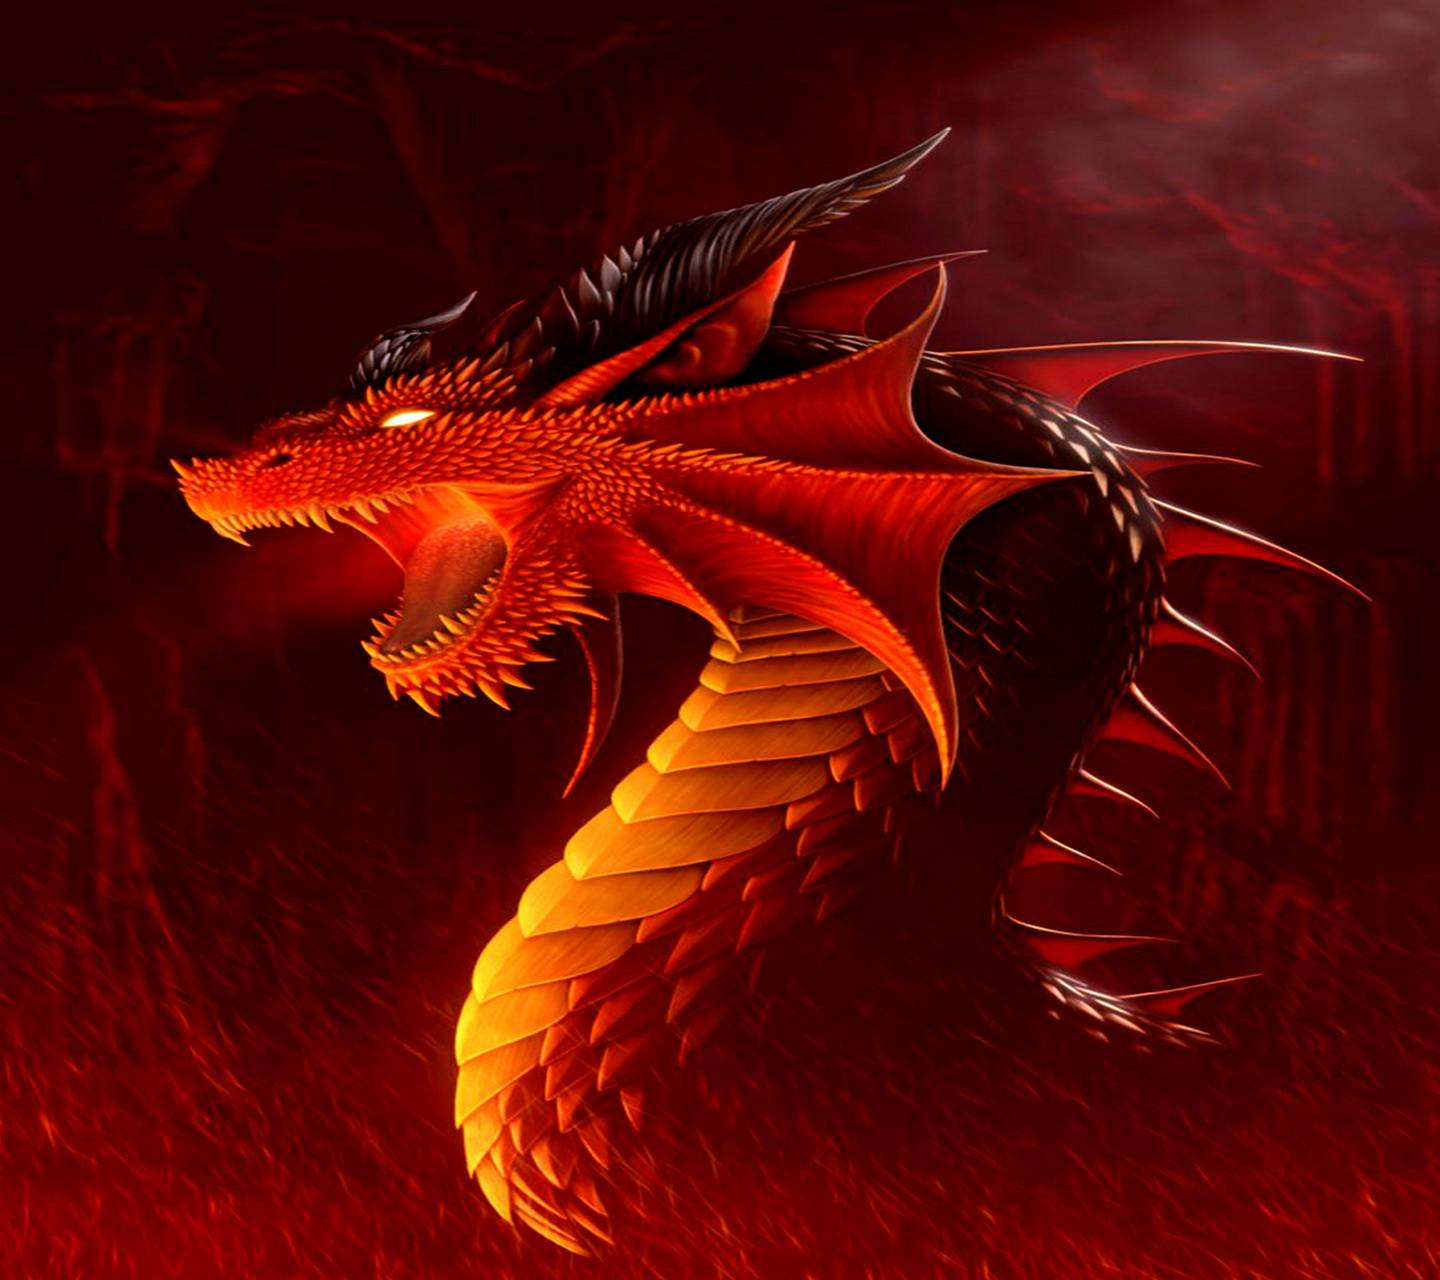 Fire Red Dragon Wallpaper By Zaragil 73 Free On Zedge